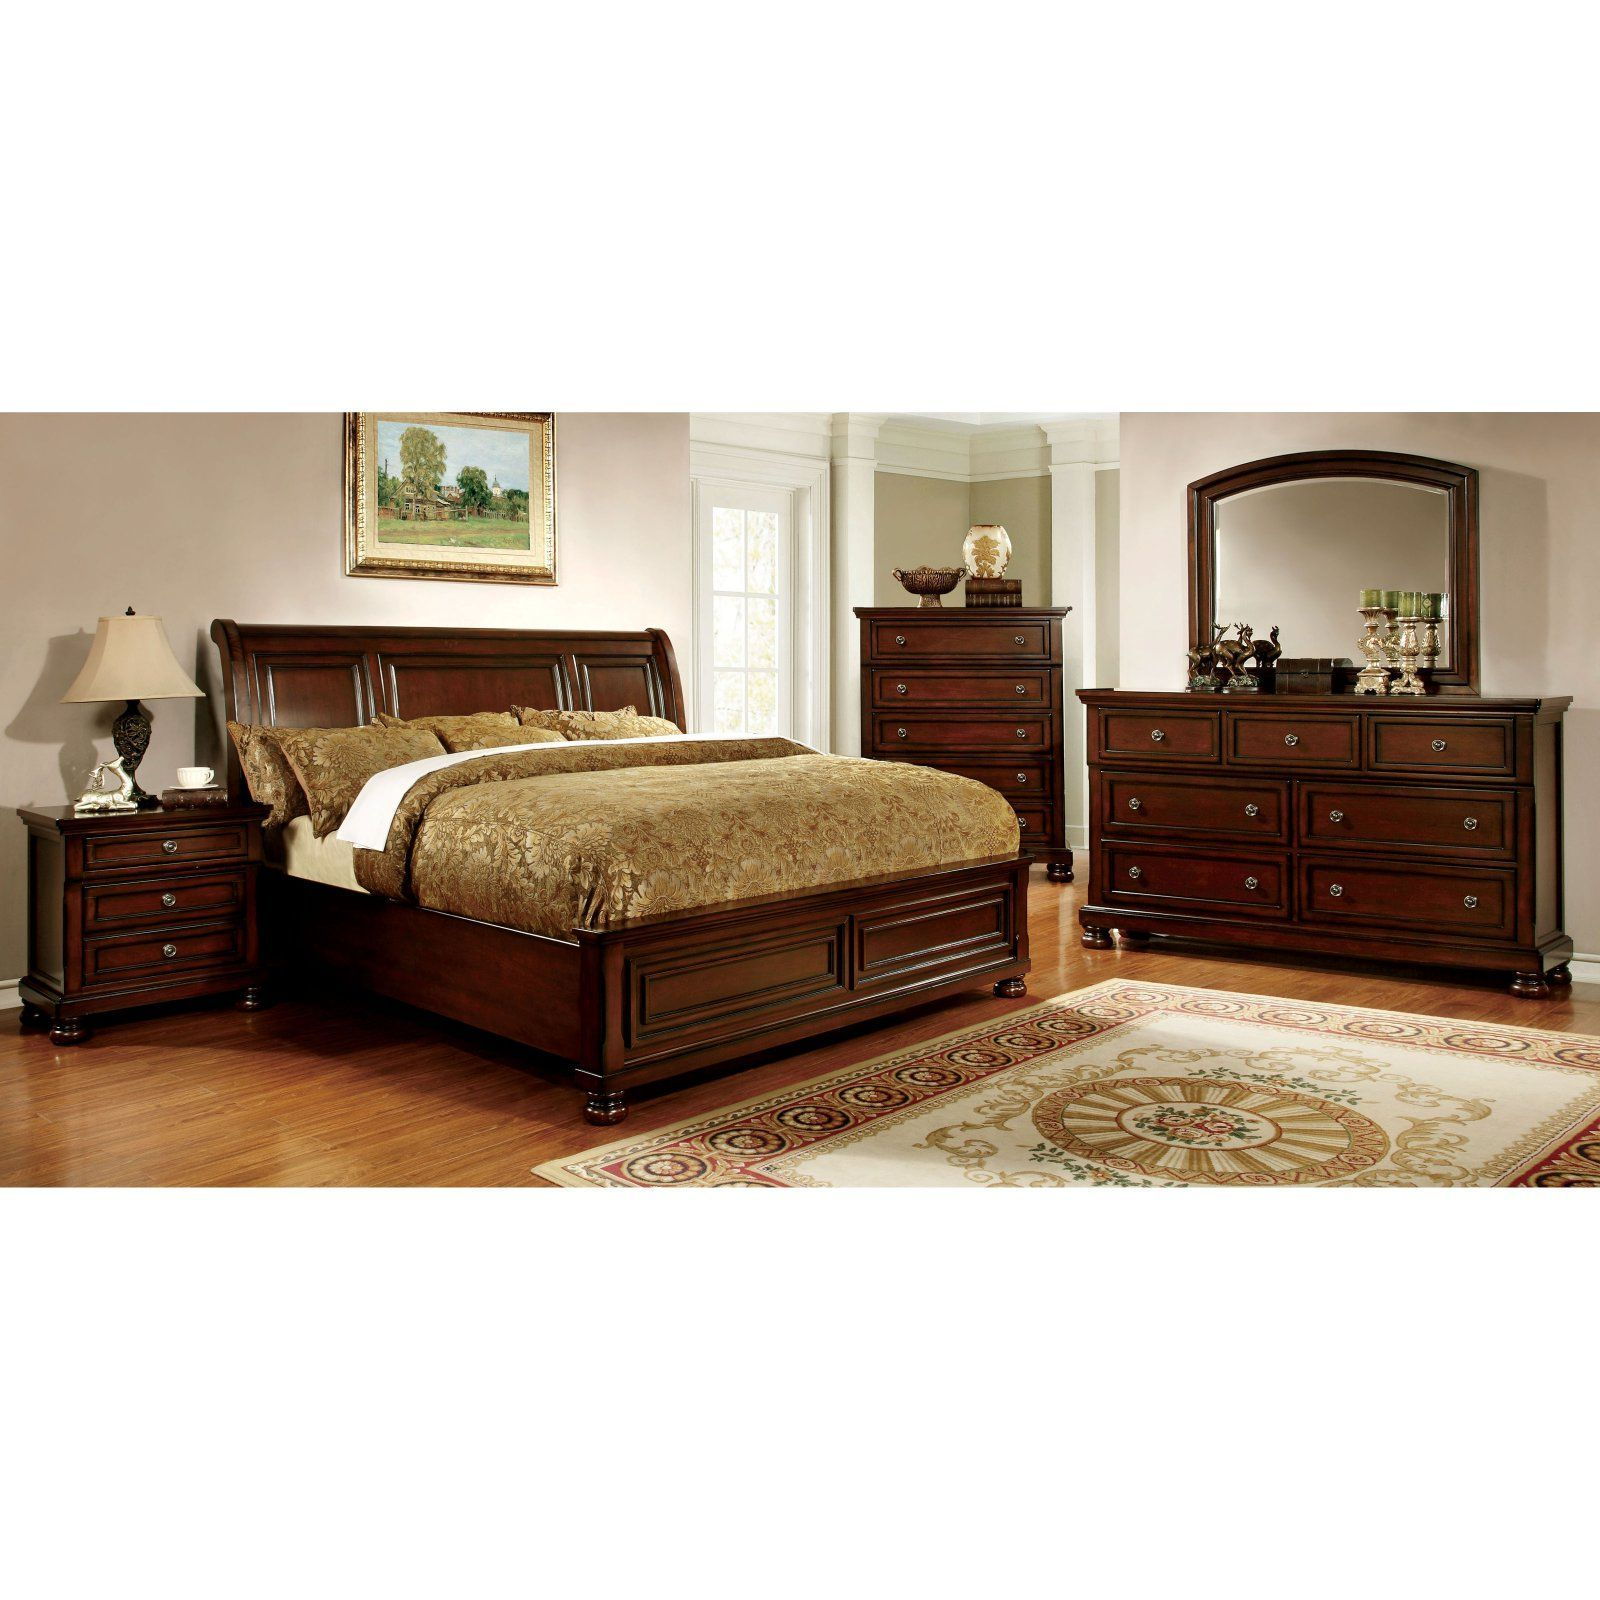 Furniture of America Birkholtz Sleigh Bed Set (With images